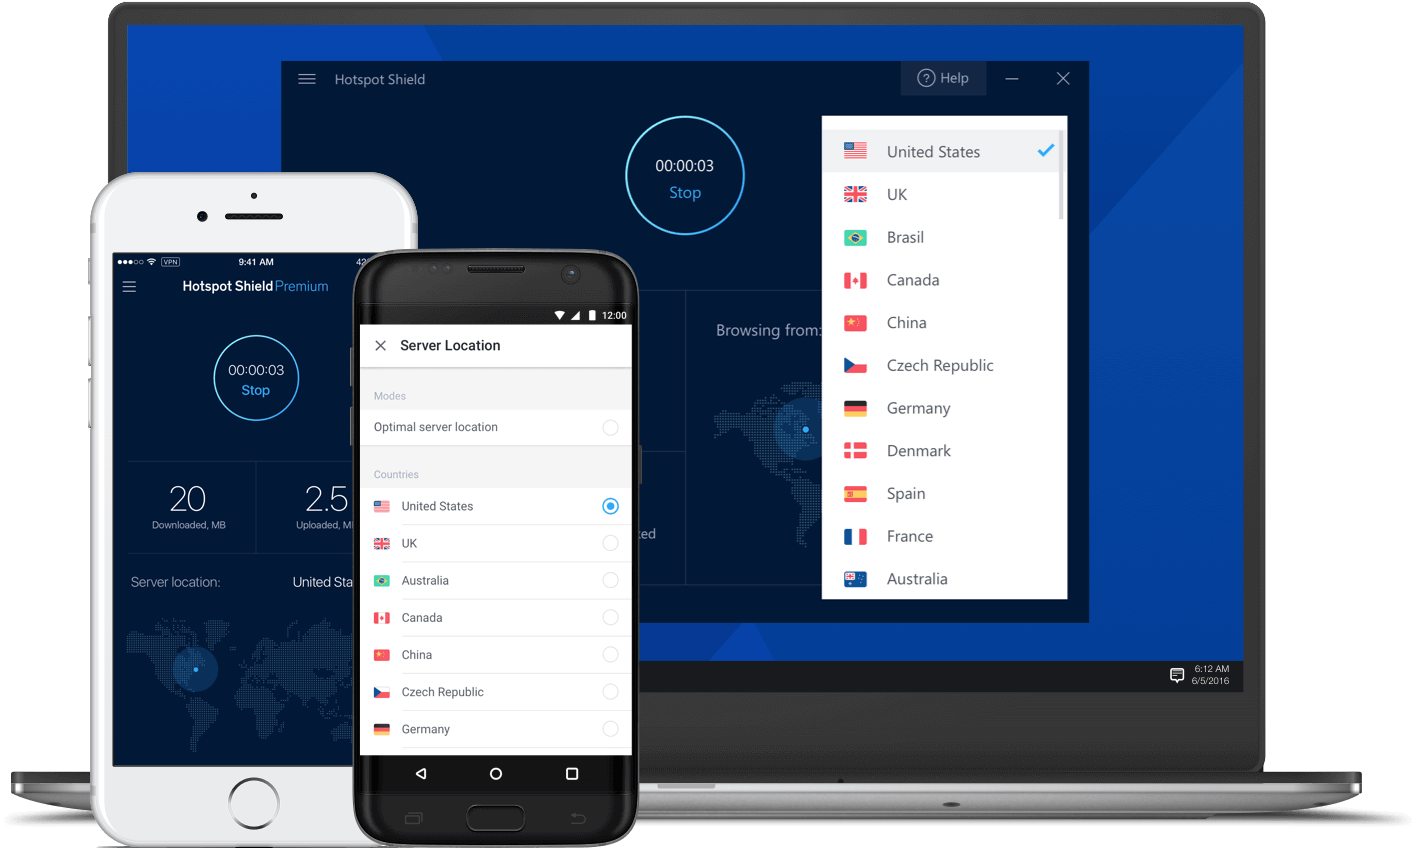 Best Free VPN Services And Apps For Mac in 2021